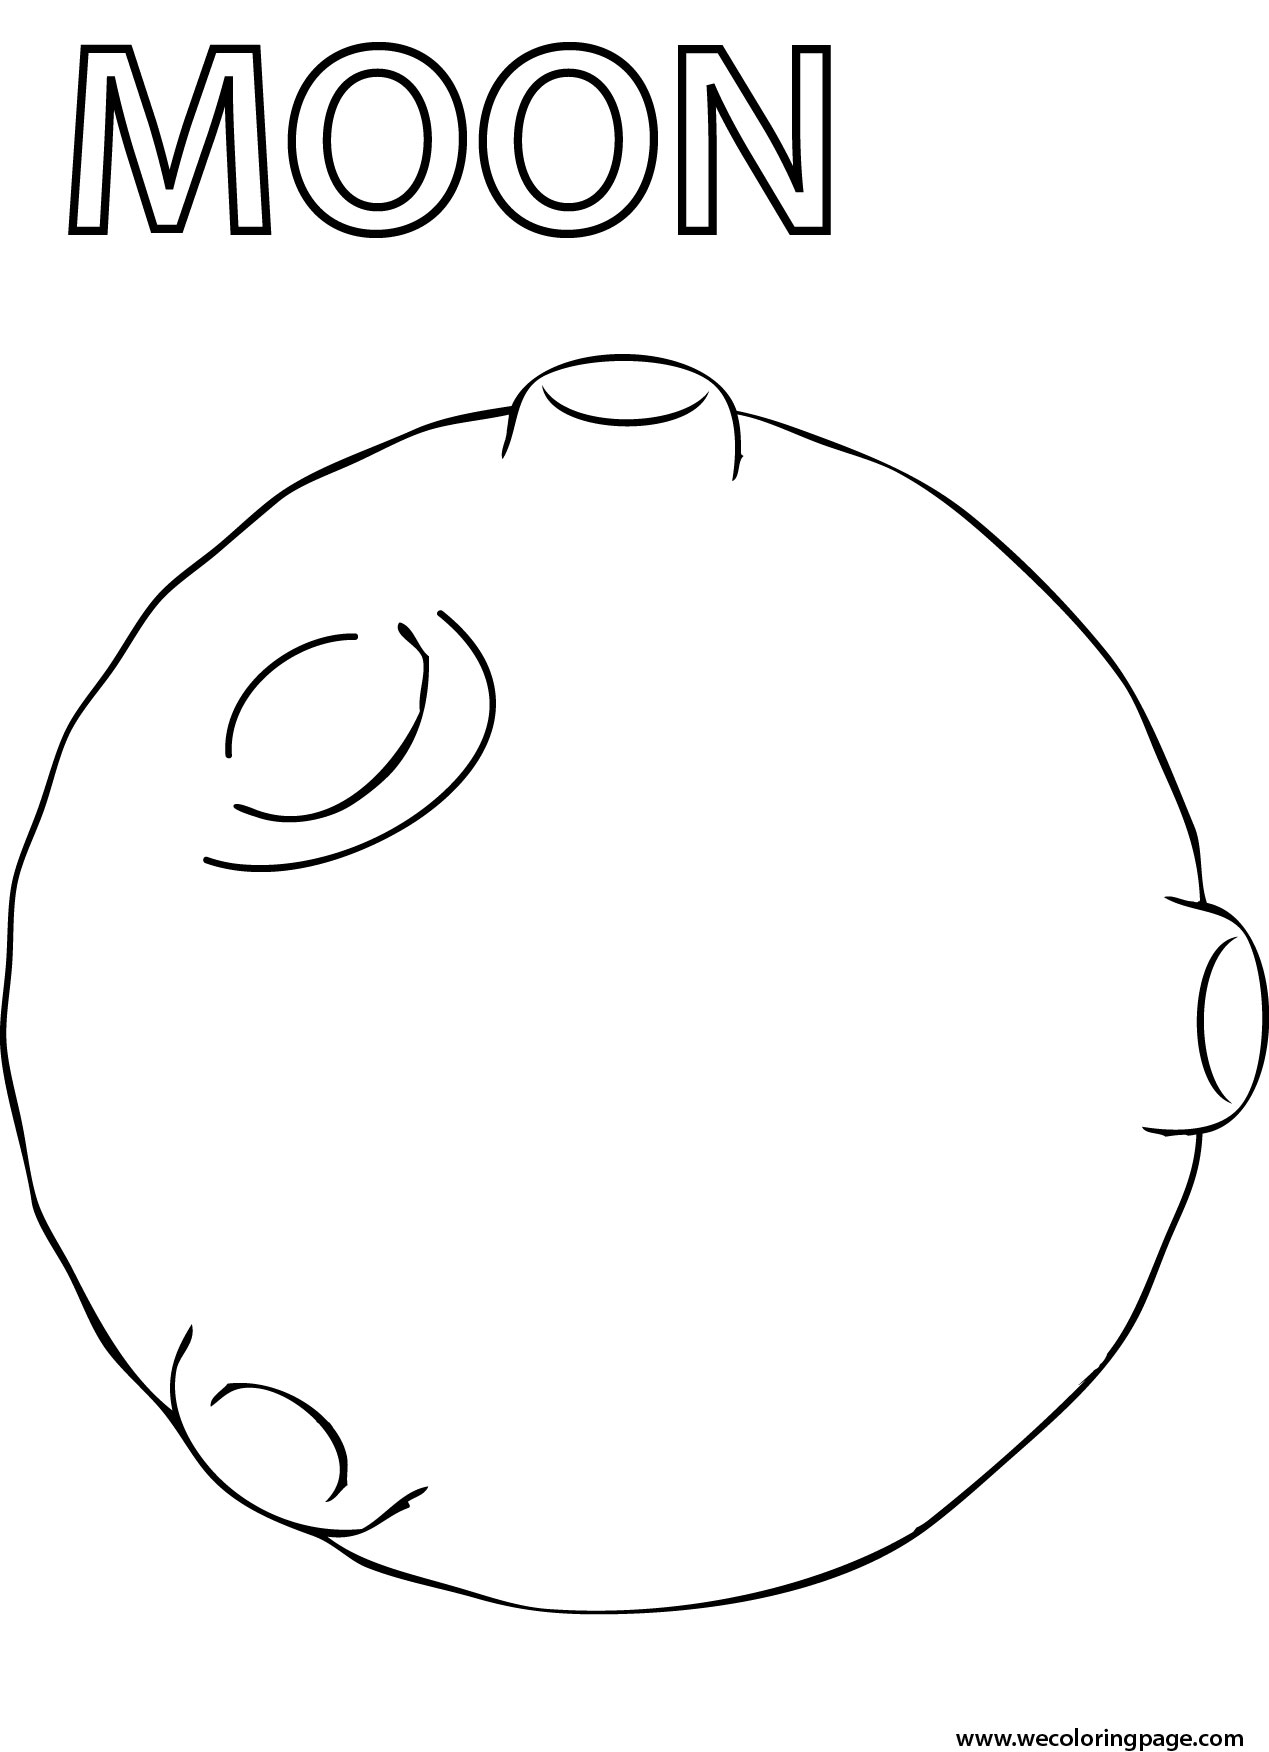 Moon Coloring Pages